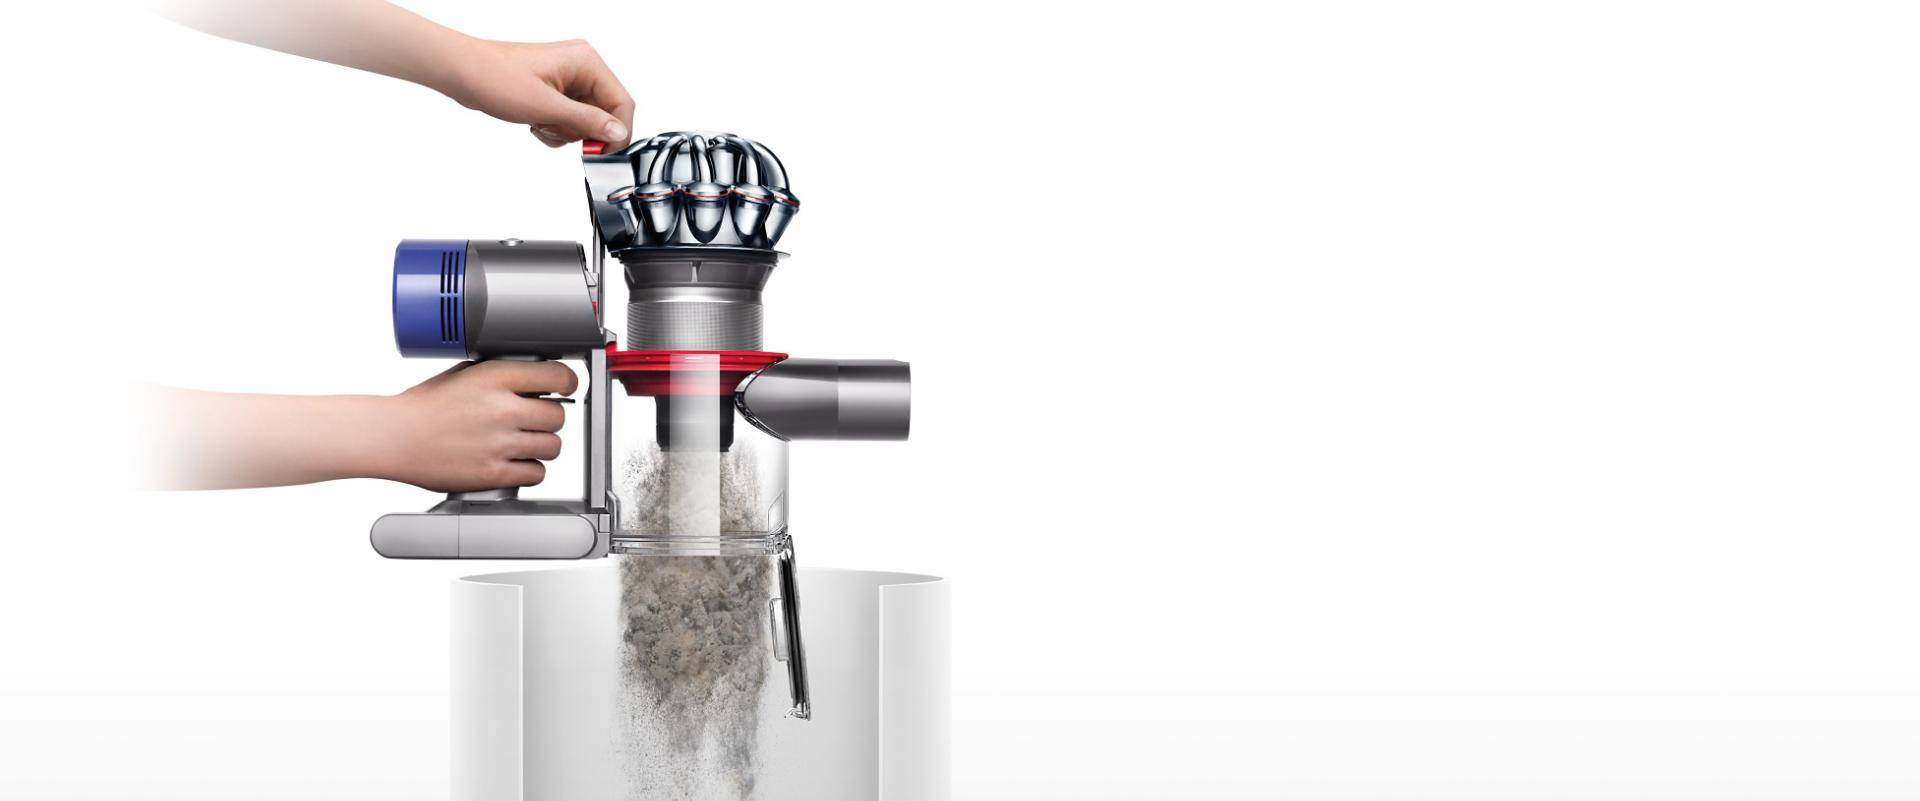 Dyson V8 being hygienically and easily emptied into a bin